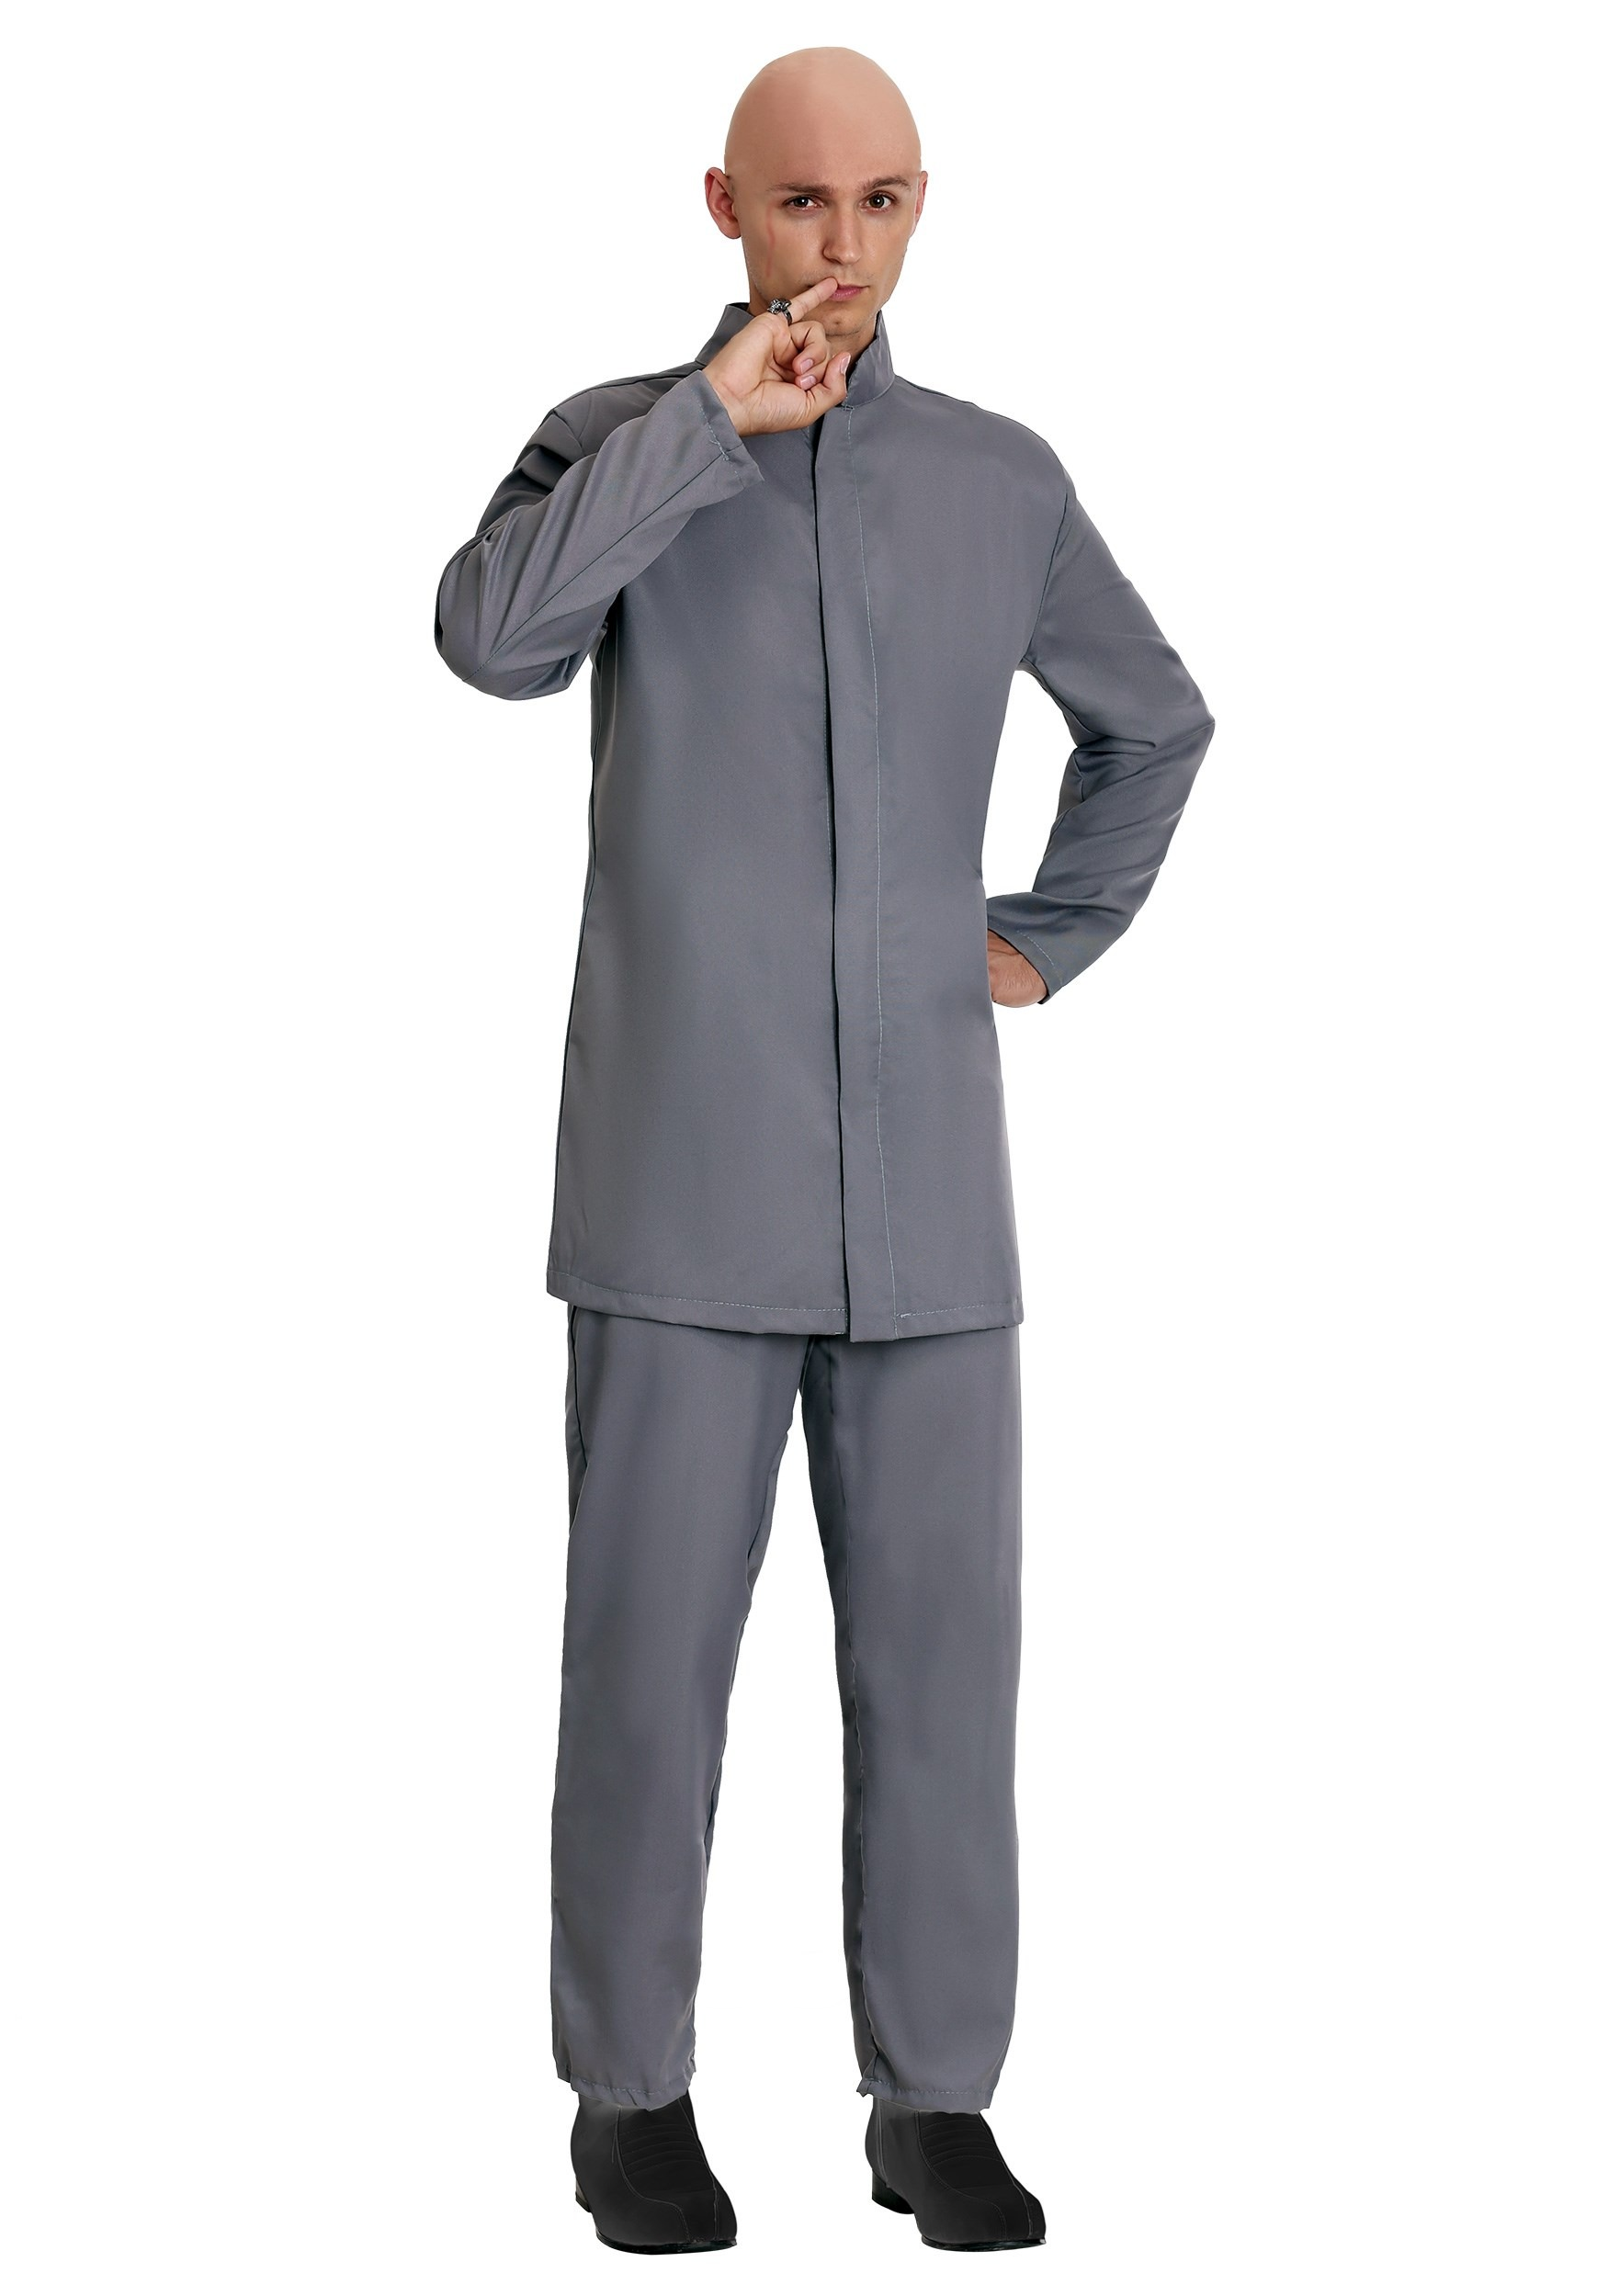 3515db99bc16 Austin Powers Costumes for Adults